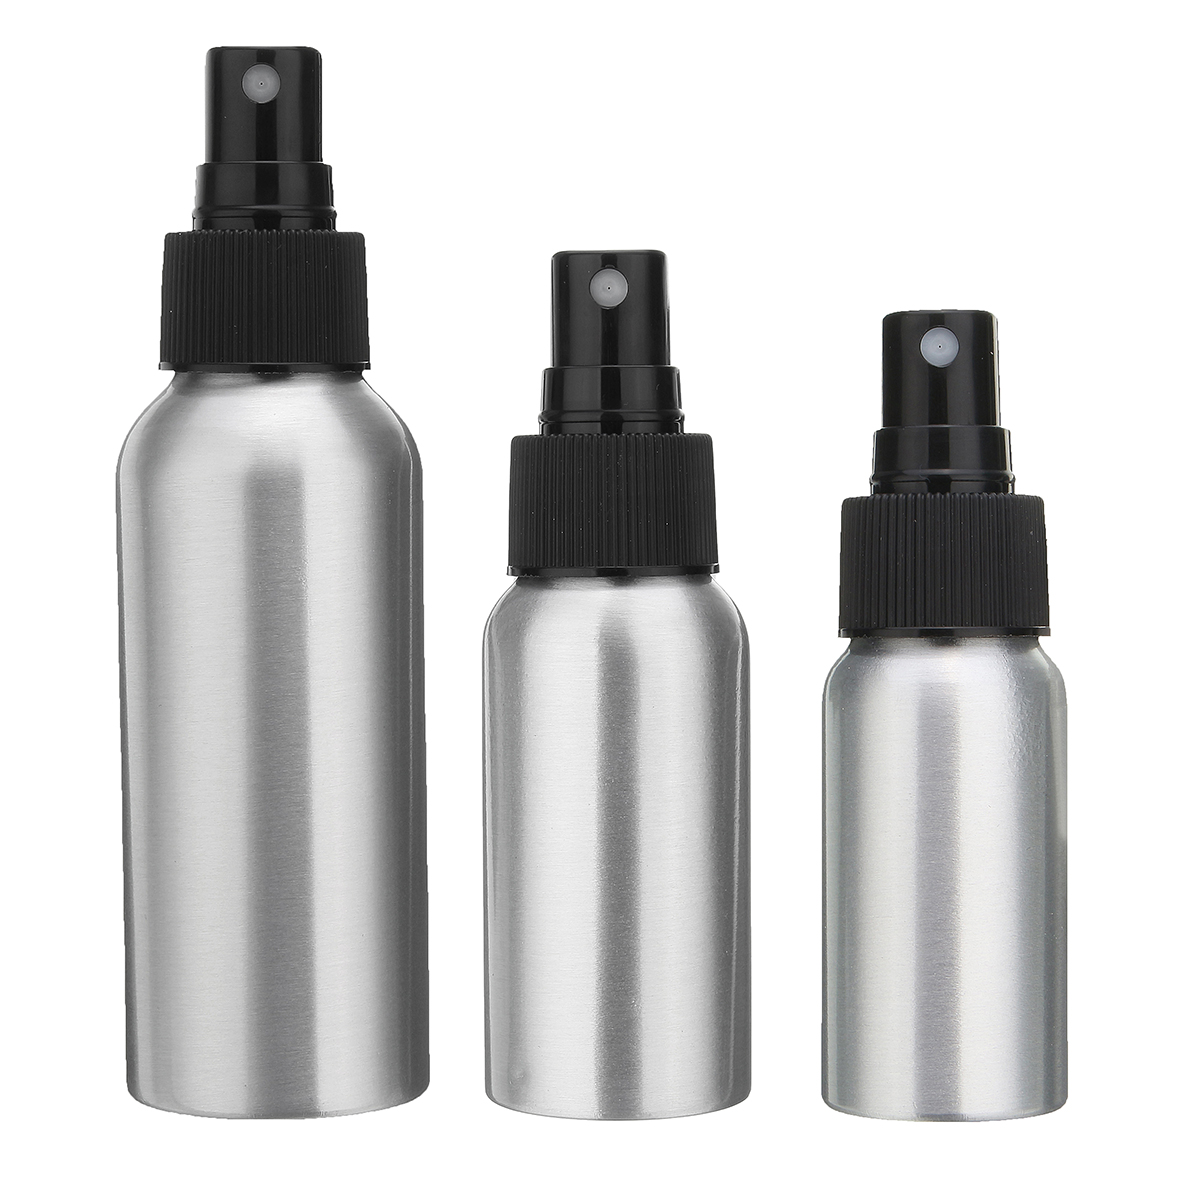 30/50/100ml Aluminum Mist Spray Bottle Pump Dispenser Perfume Atomizer Atomiser